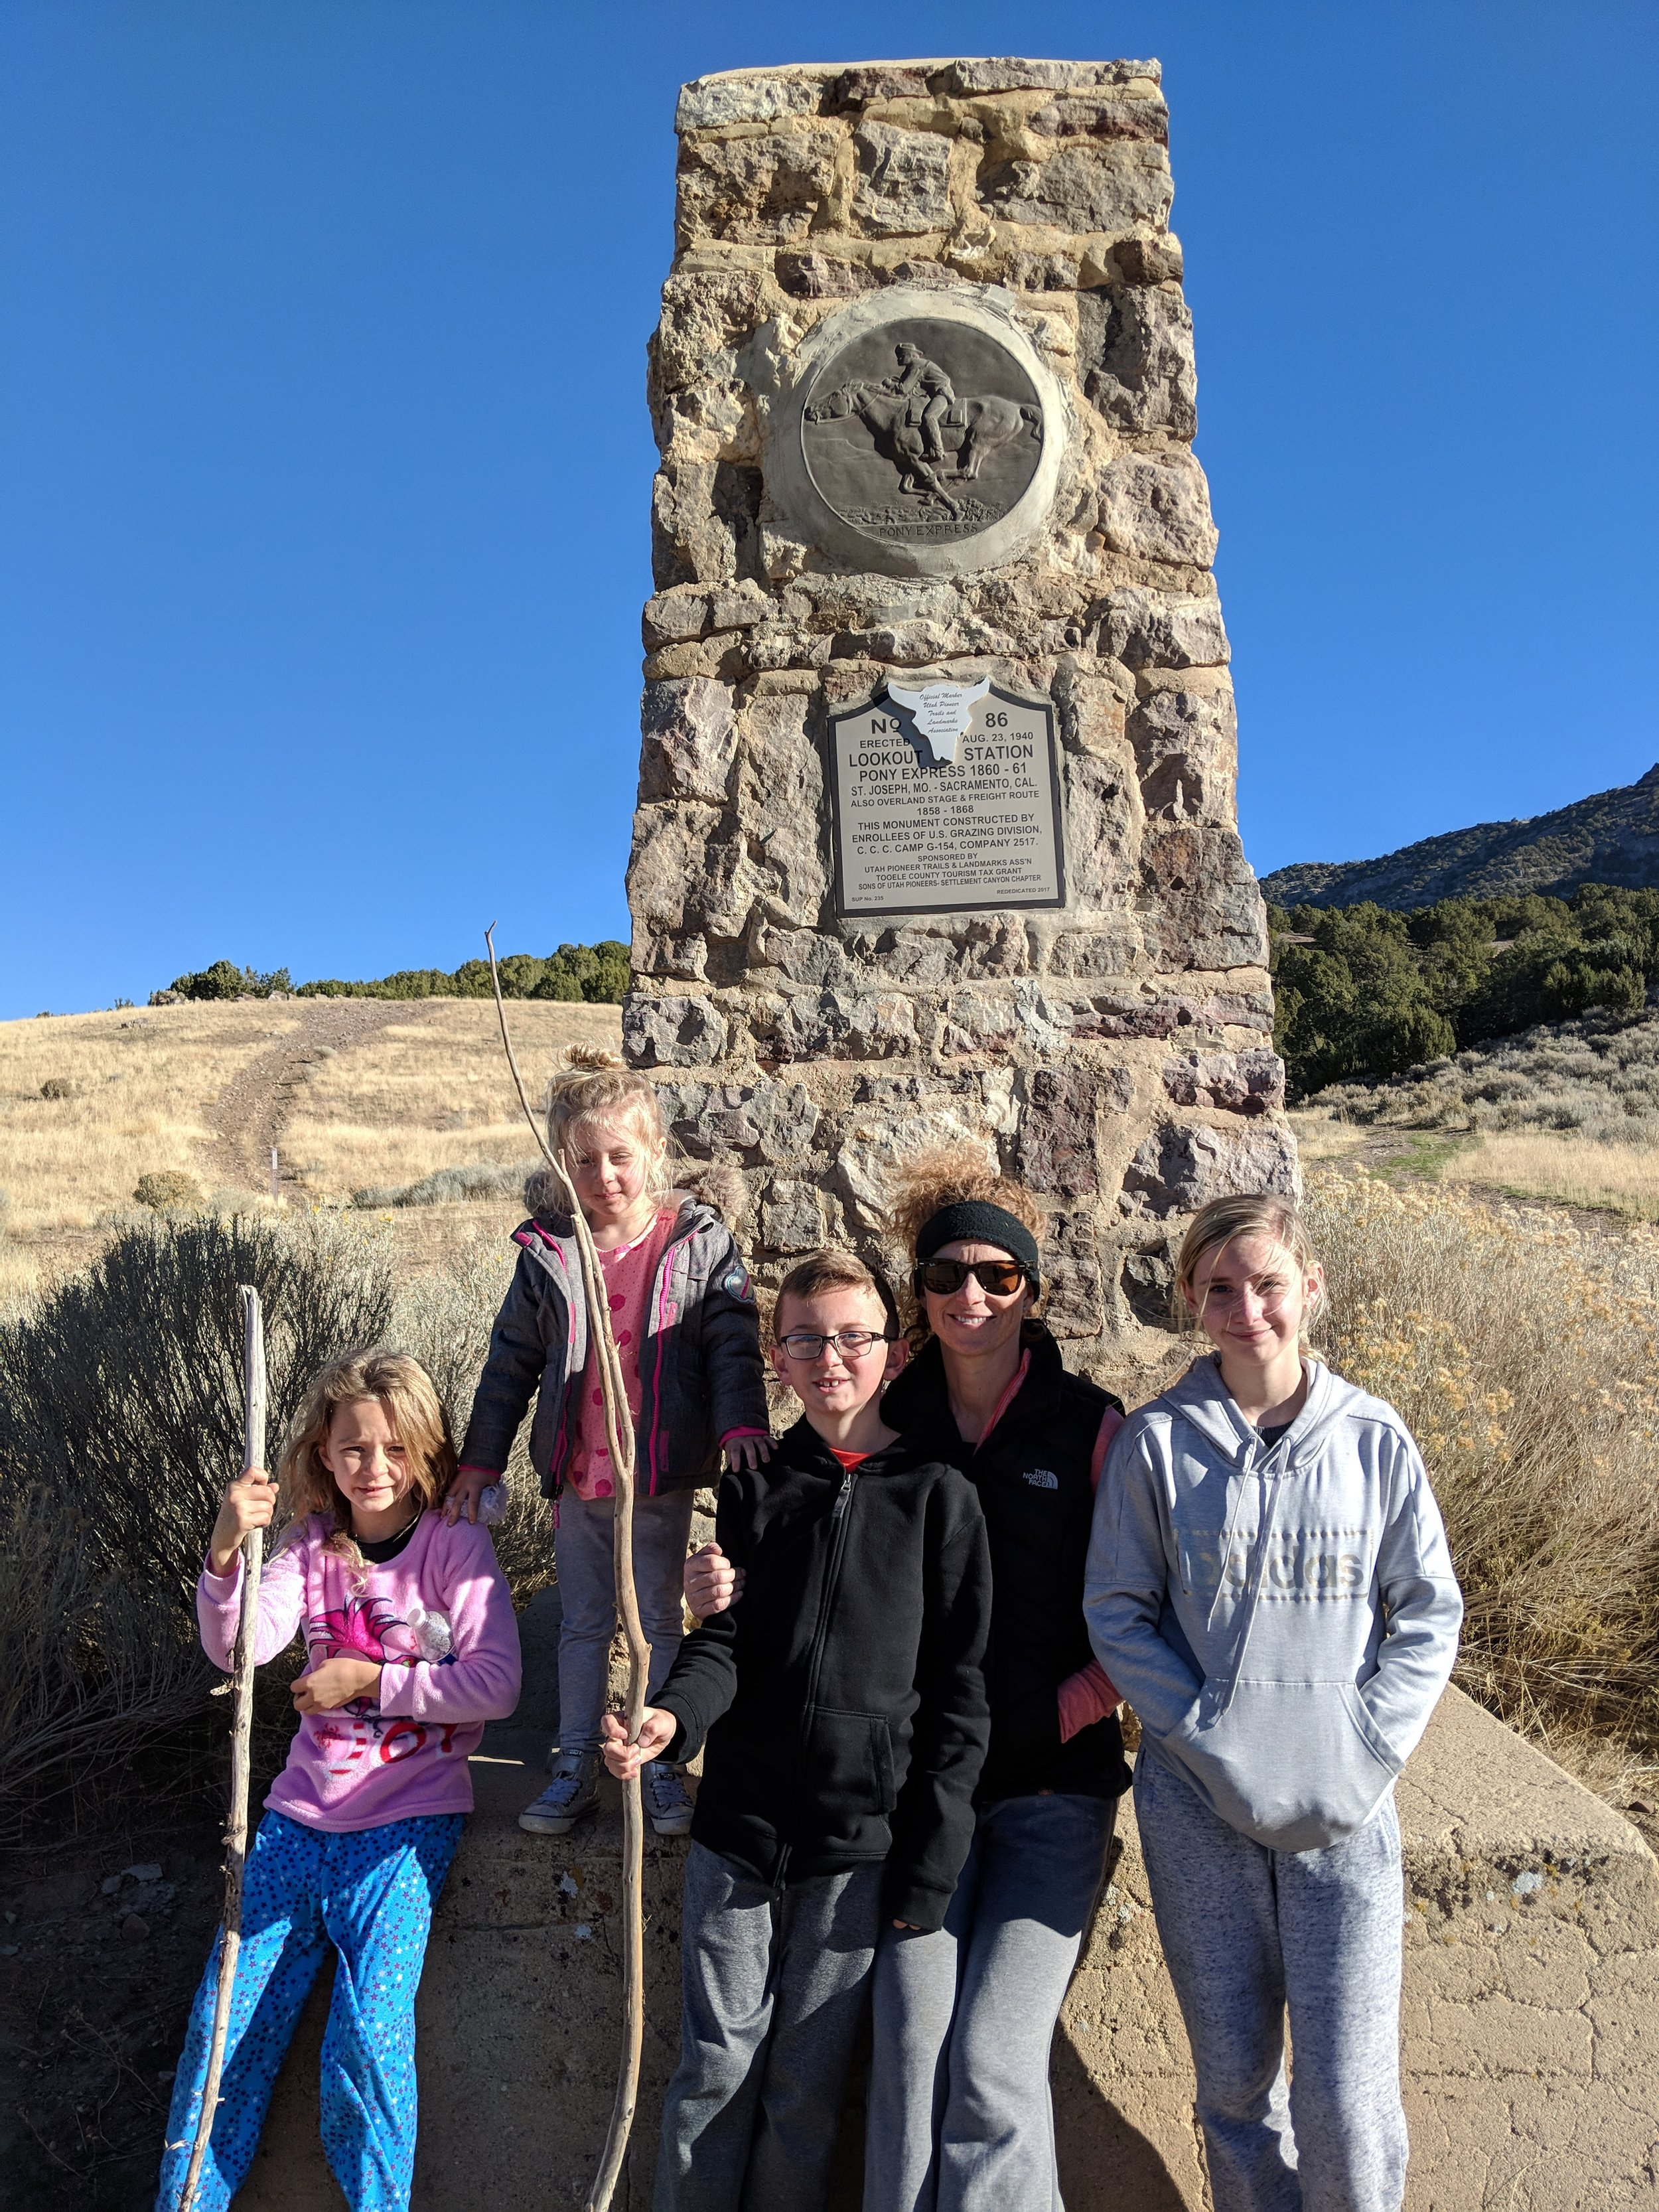 Using our fitness this UEA weekend hiking around the historic Pony Express Highway and digging for geodes in the Dugway Geode Beds. Tell us what you did this weekend. Better yet, send us a pic!